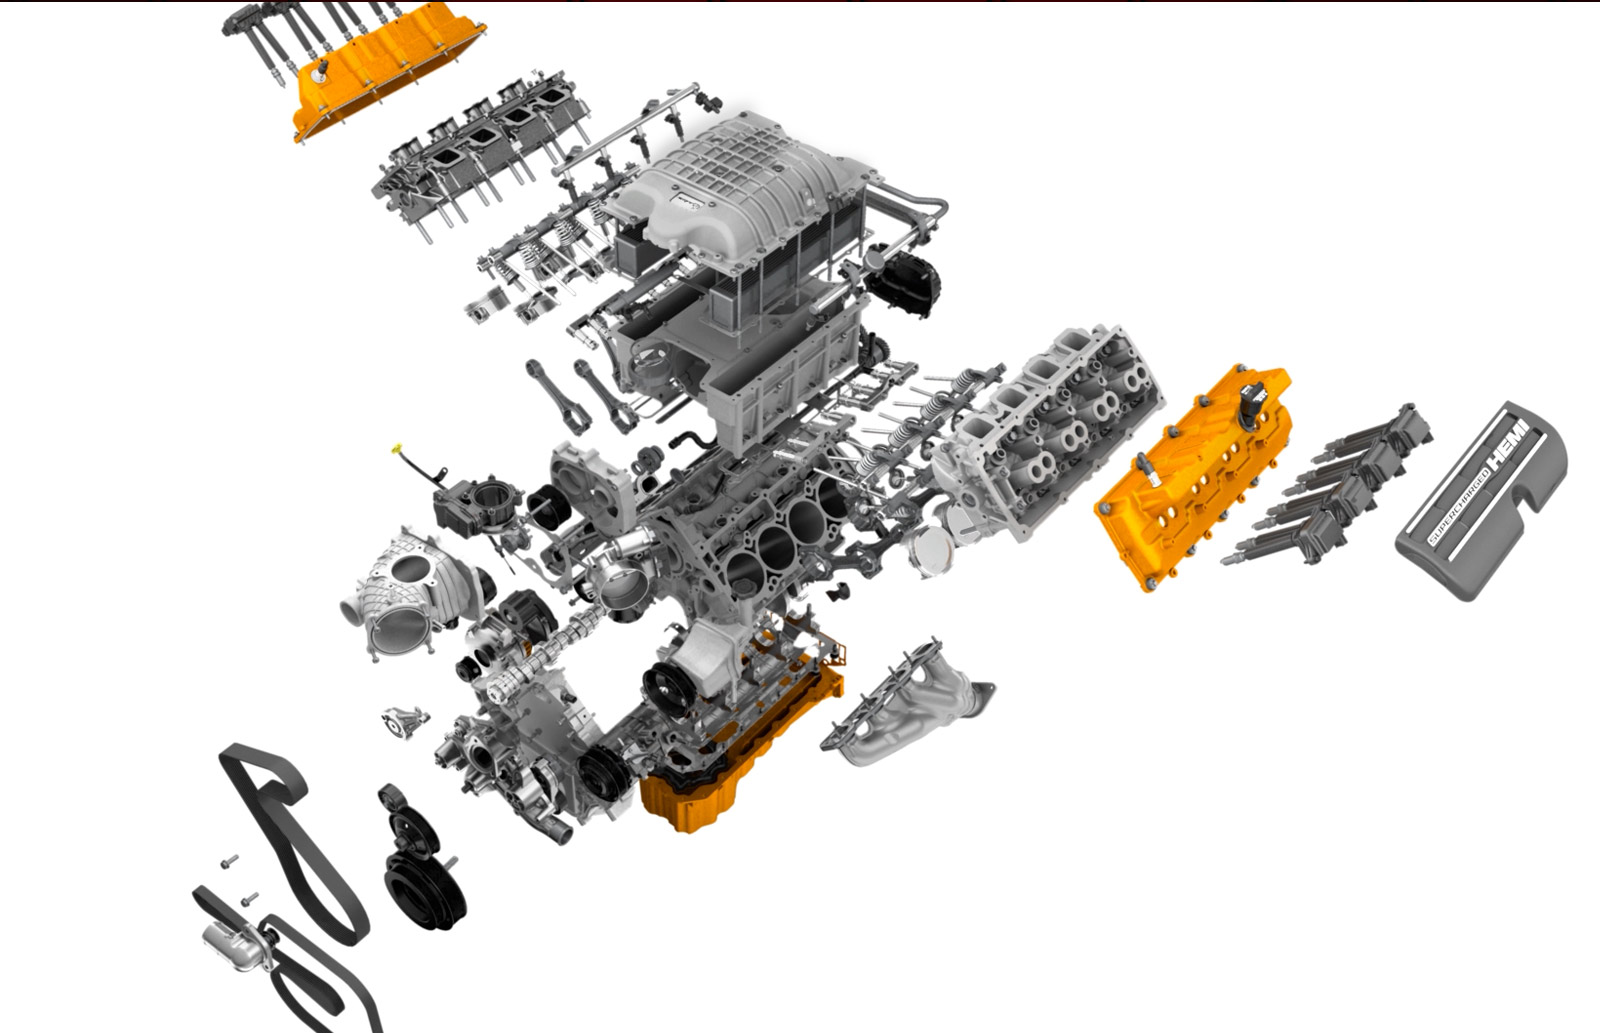 Honda K Series Engine Diagram furthermore 50 Srt Hellcat V8 62l Hemi Supercharged in addition 87 Dodge Ram Ignition Wiring Diagram as well Typical Engine Manifold Vacuum also 33cf2aa6ae868d56. on dodge challenger v8 engine